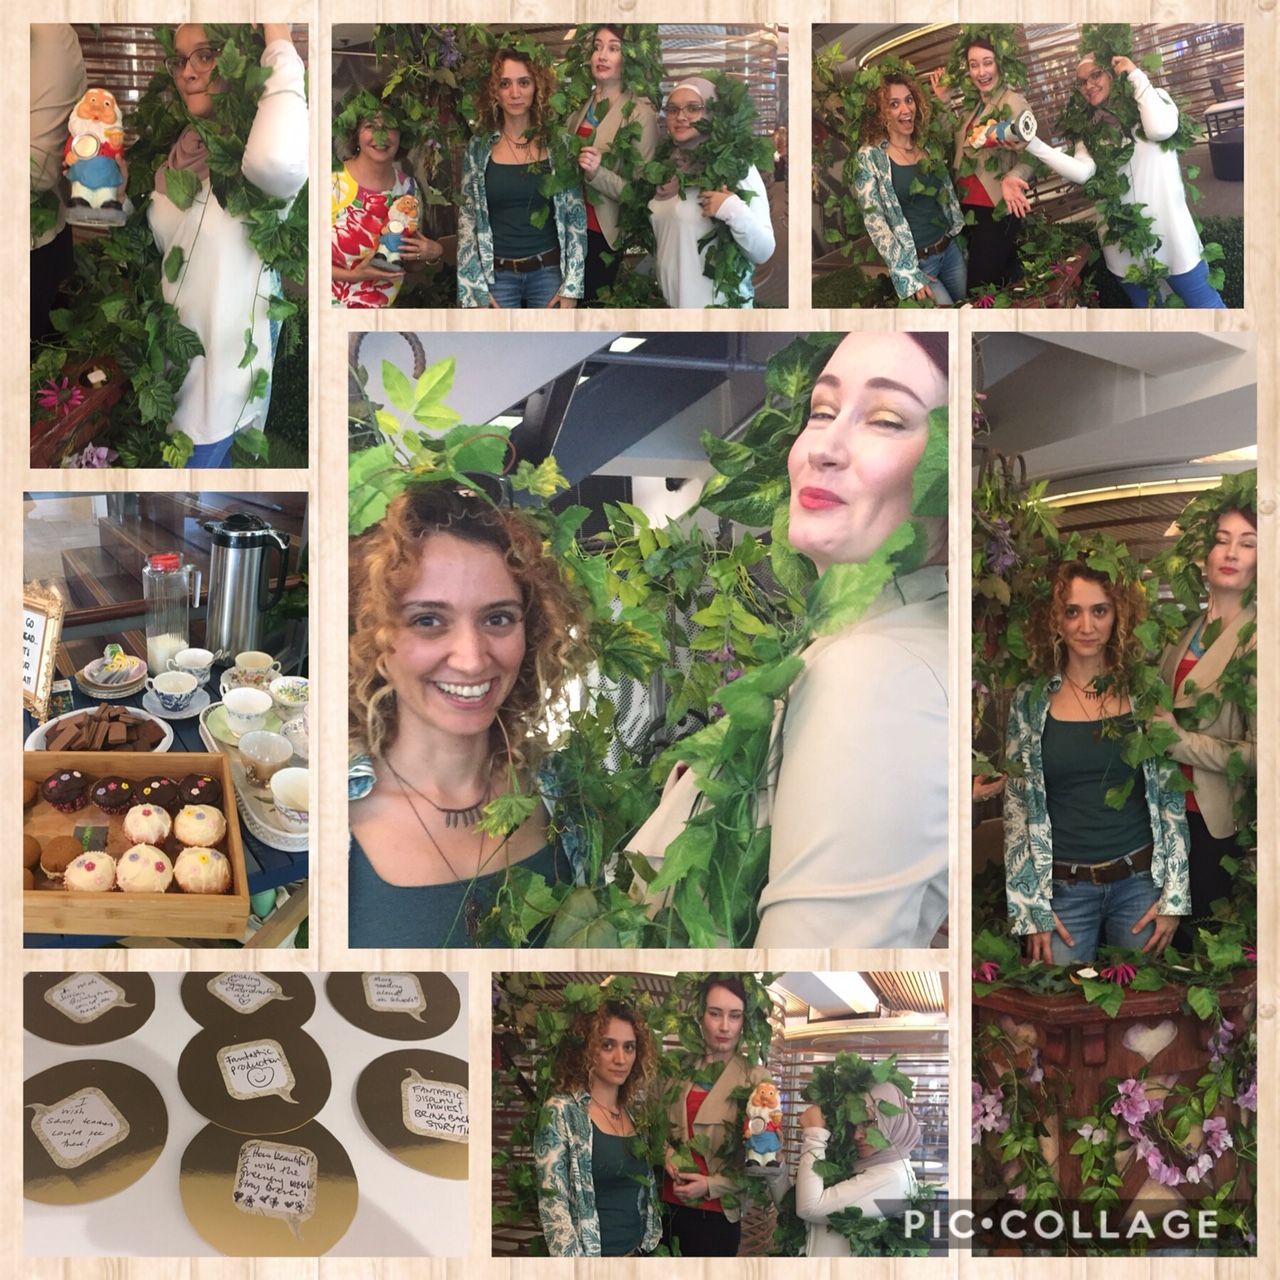 a collage of students in an indoor garden setting